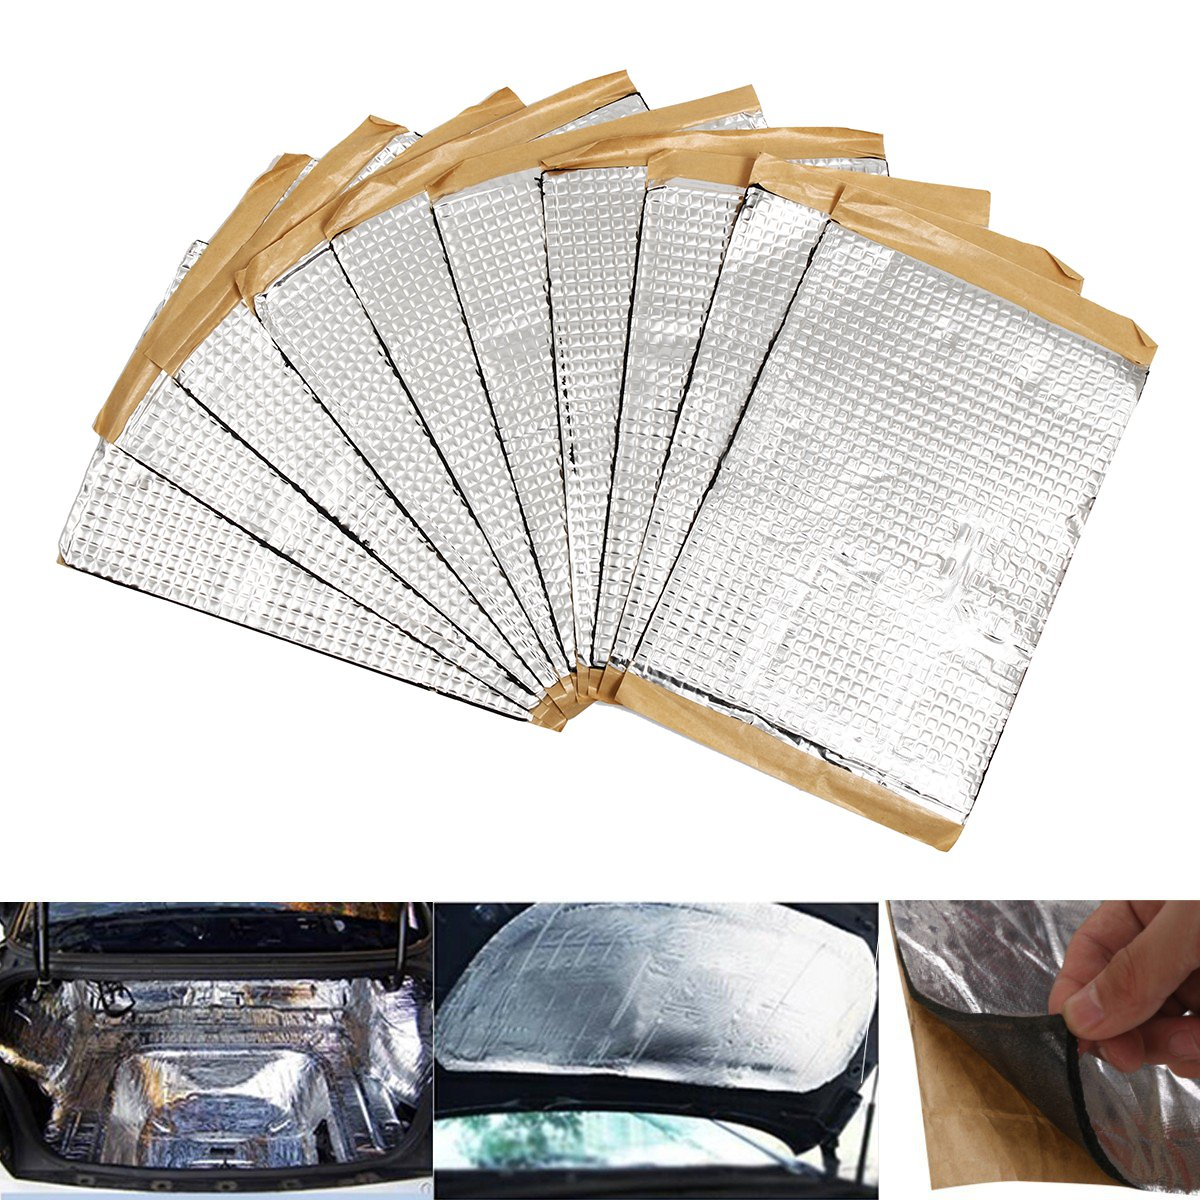 10 Pcs Automobiles Car Sound Deadener Deadening Vibration Sound Proofing Damping Mat Heat Noise Shield Insulation 187x265mm 2mm(China)